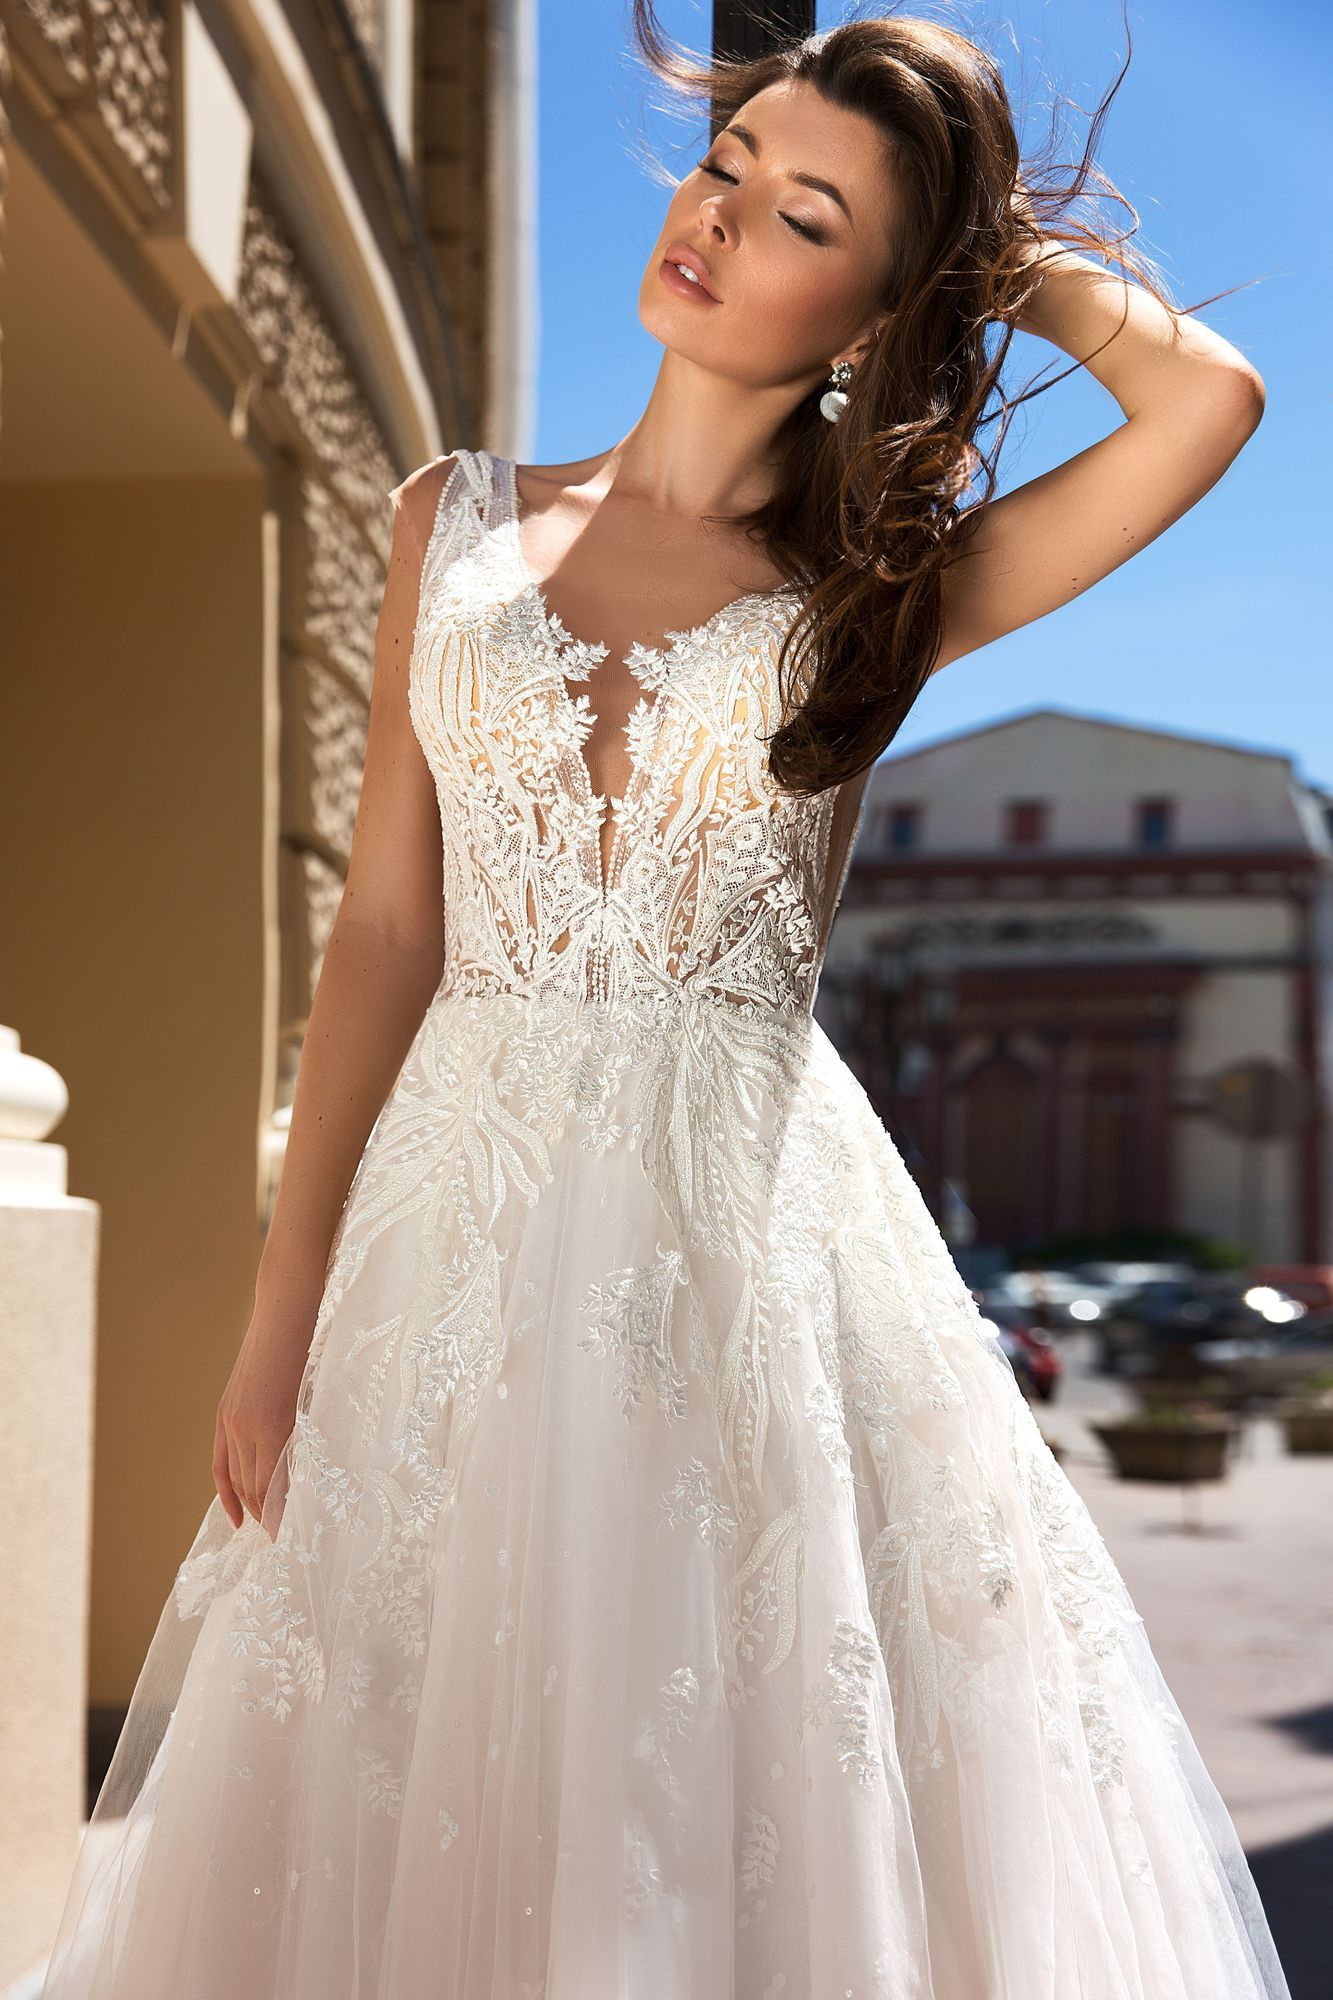 Elegant A Line Wedding Dress From Jacqueline S Bridal Near Boston Ma Jacqueline Sbridal Weddingd Wedding Dresses A Line Wedding Dress Wedding Dress Couture